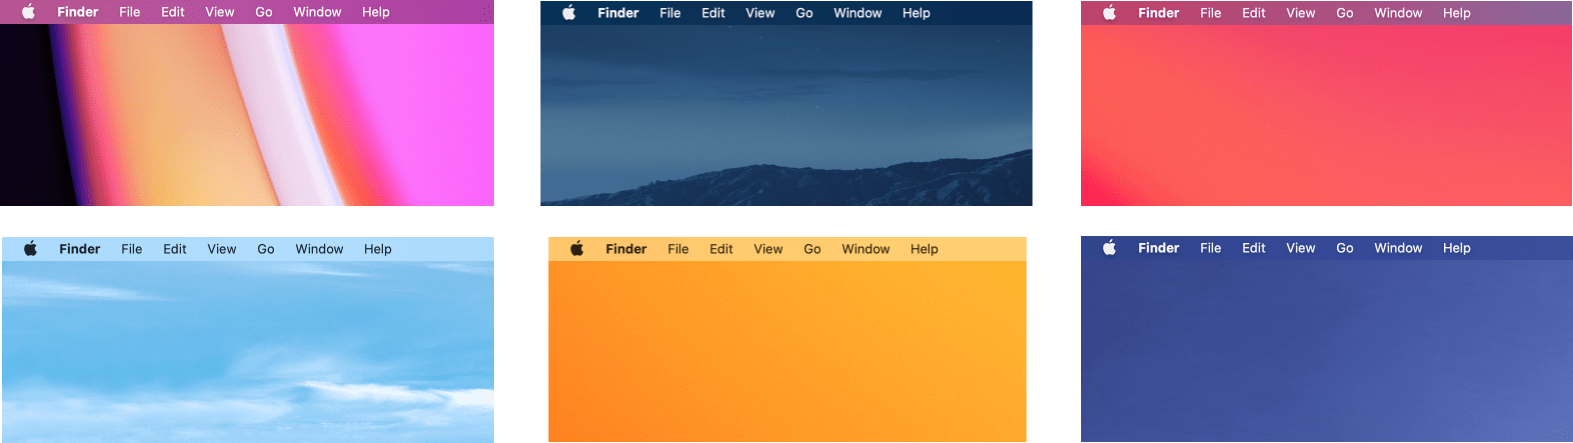 The translucency of the menu bar makes it take on the character of the desktop picture.